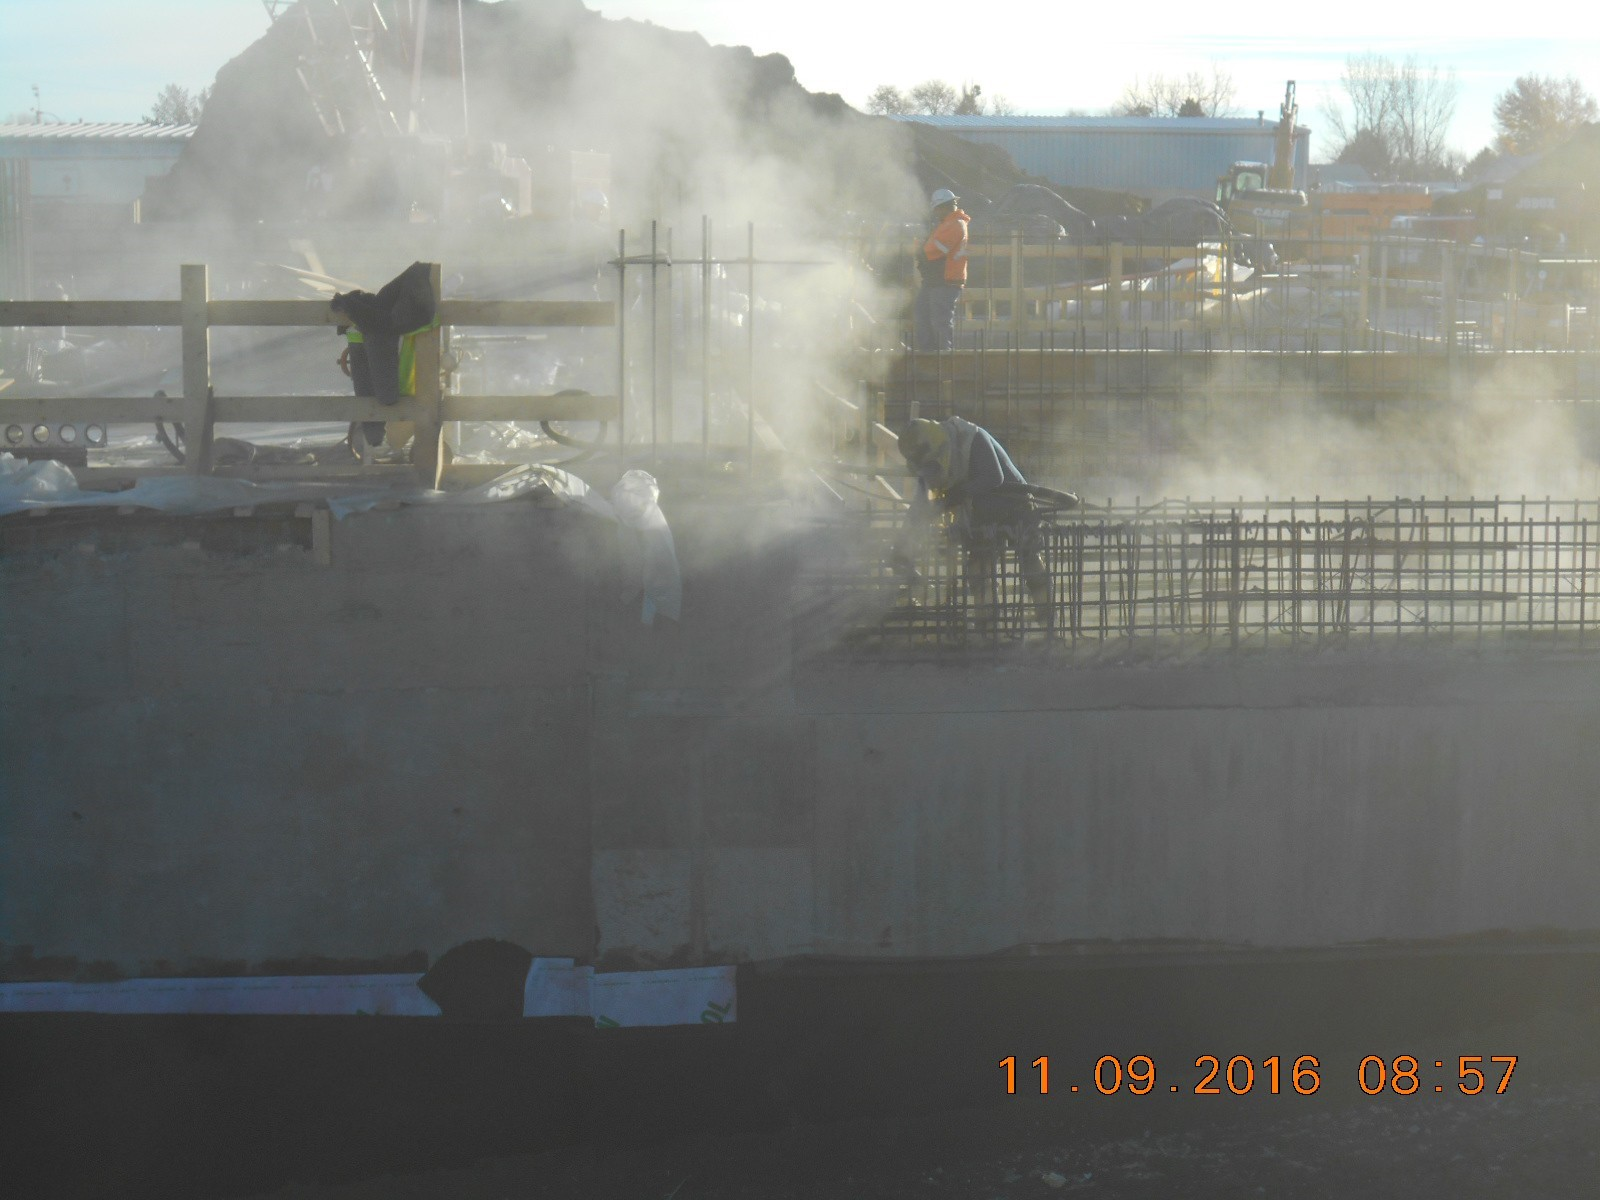 JTJ sandblasting the top of the Ozone Basin walls.